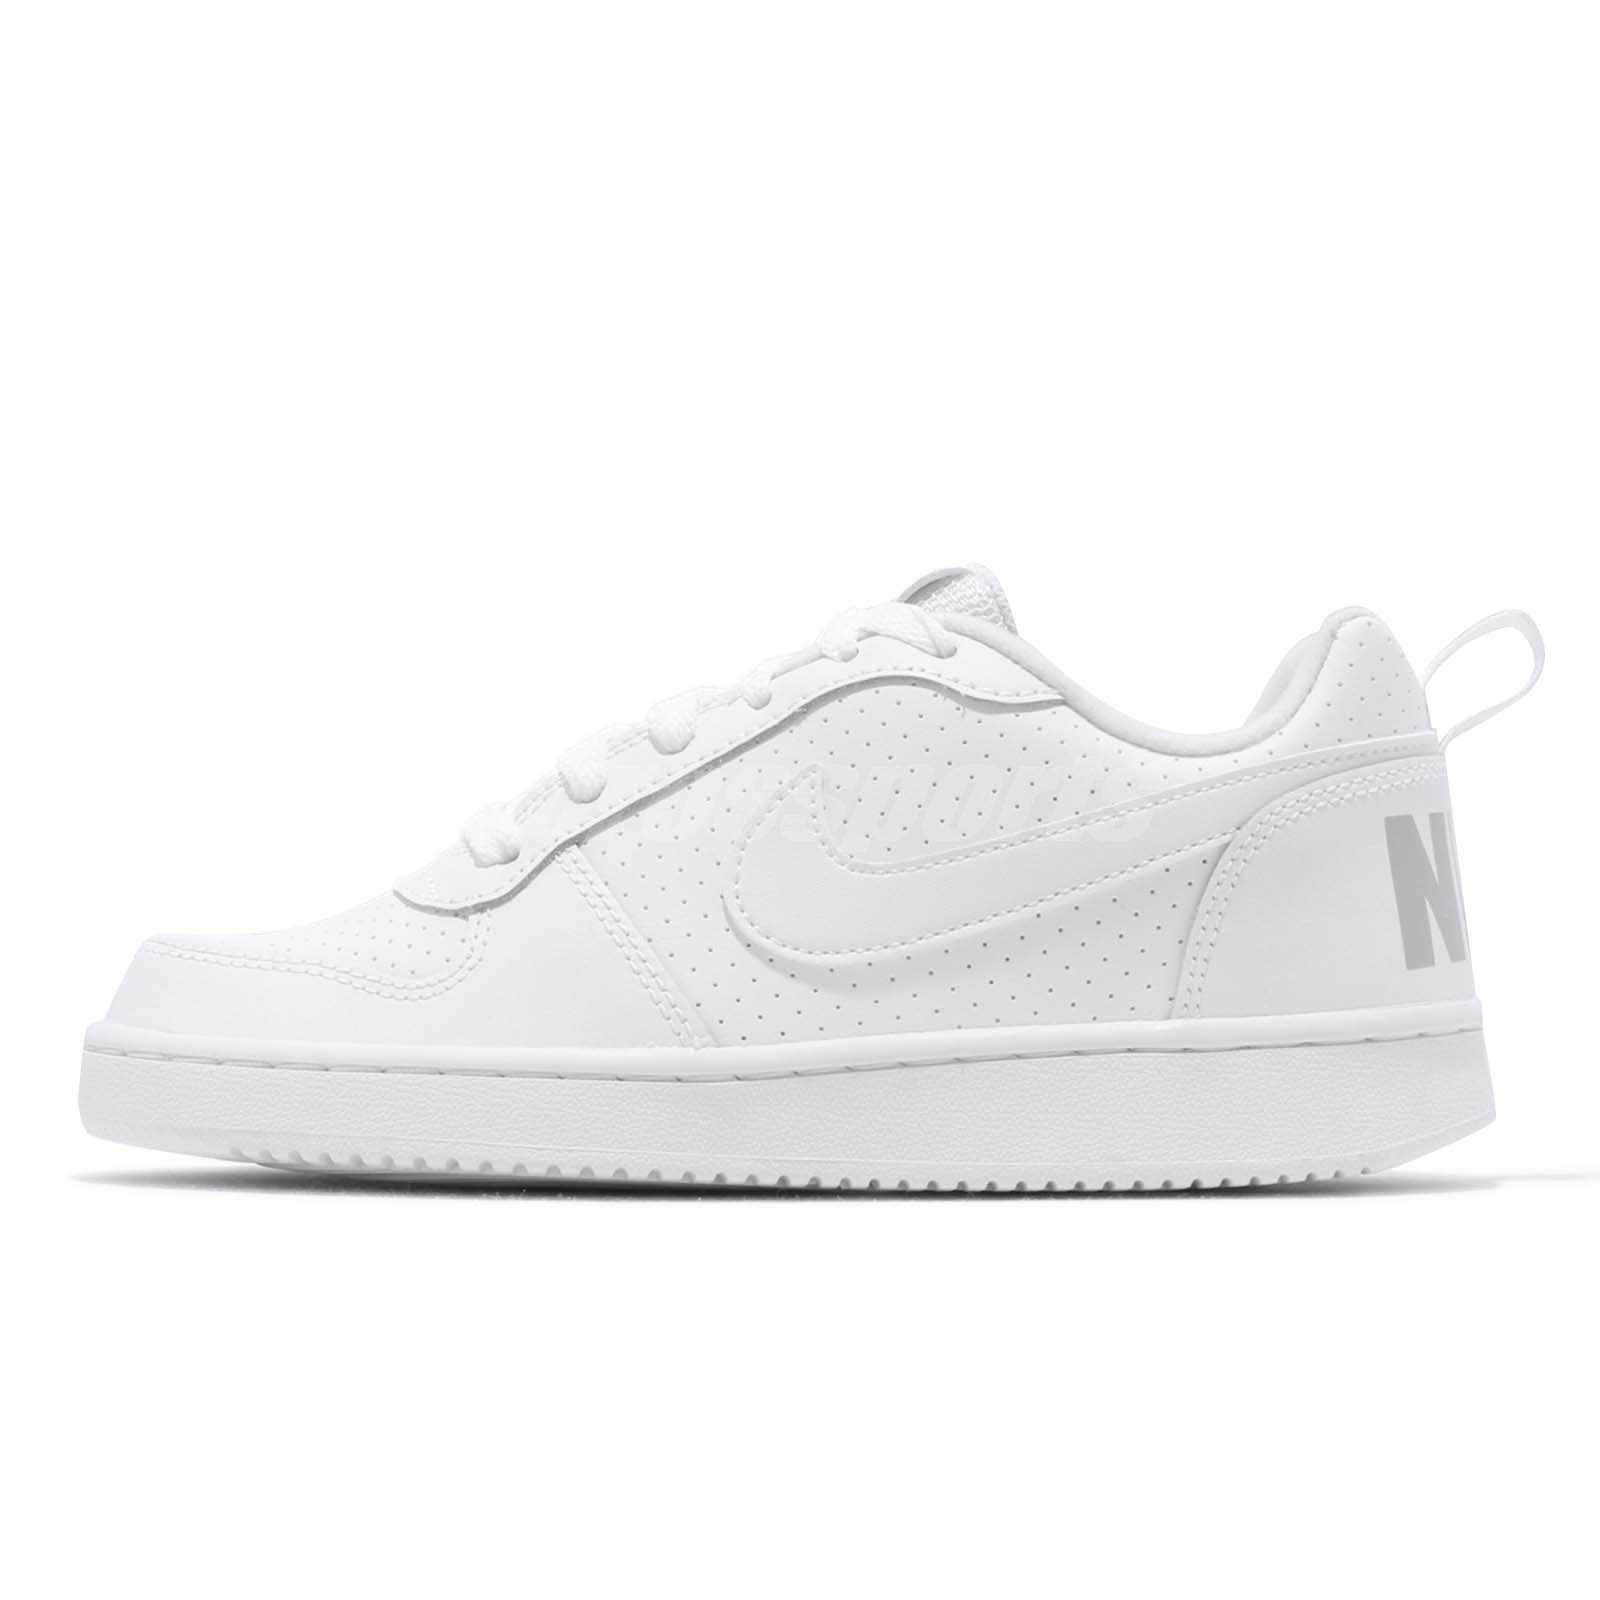 64d16dc3f41 Nike Court Borough Low GS White Grey Kids Womens Tennis Casual Shoes  839985-100